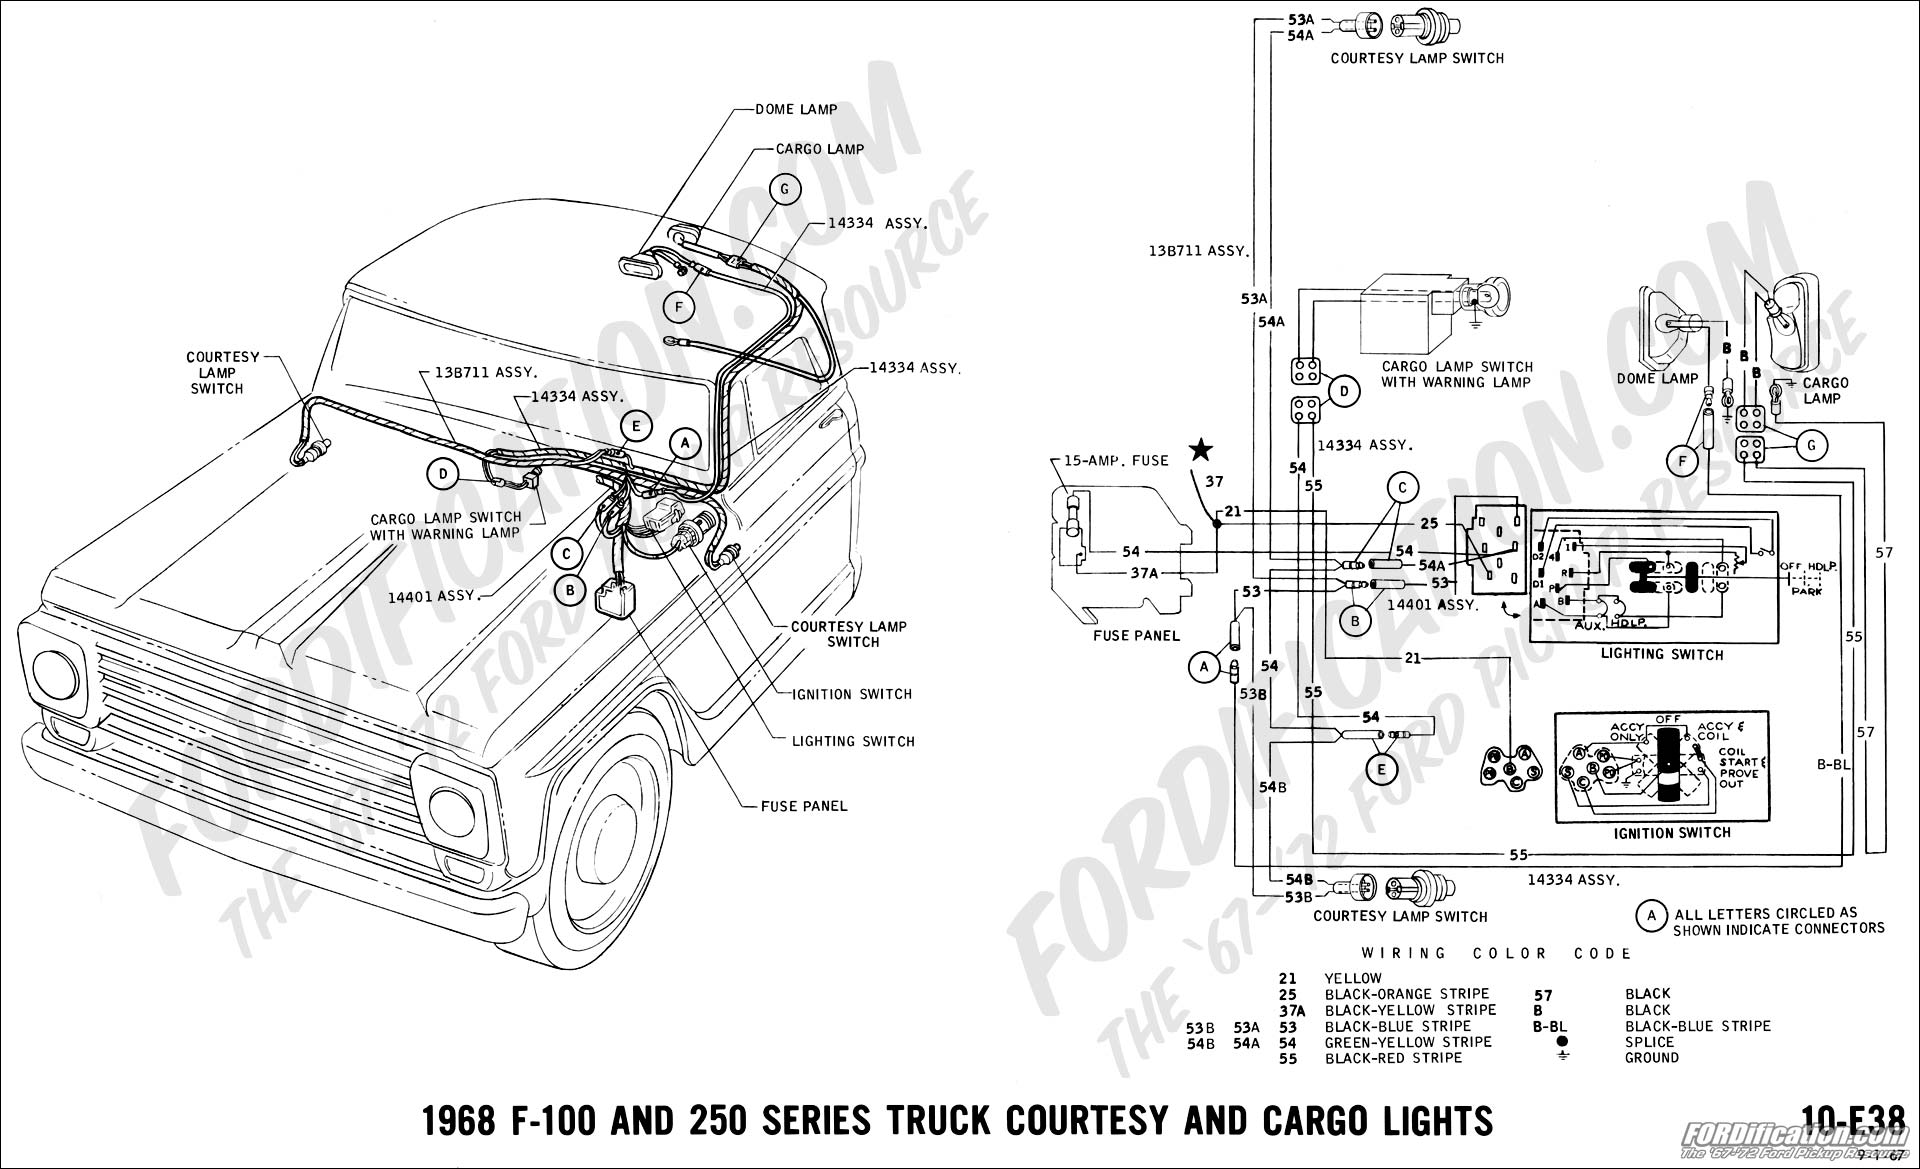 1977 Corvette Steering Column Diagram additionally Grote Universal Turn Signal Wiring Diagram besides 63 Ford F100 Wiring in addition 1960s Ford Fairlane additionally Srs Airbag Need Files 170465. on 1966 ford wiring diagram